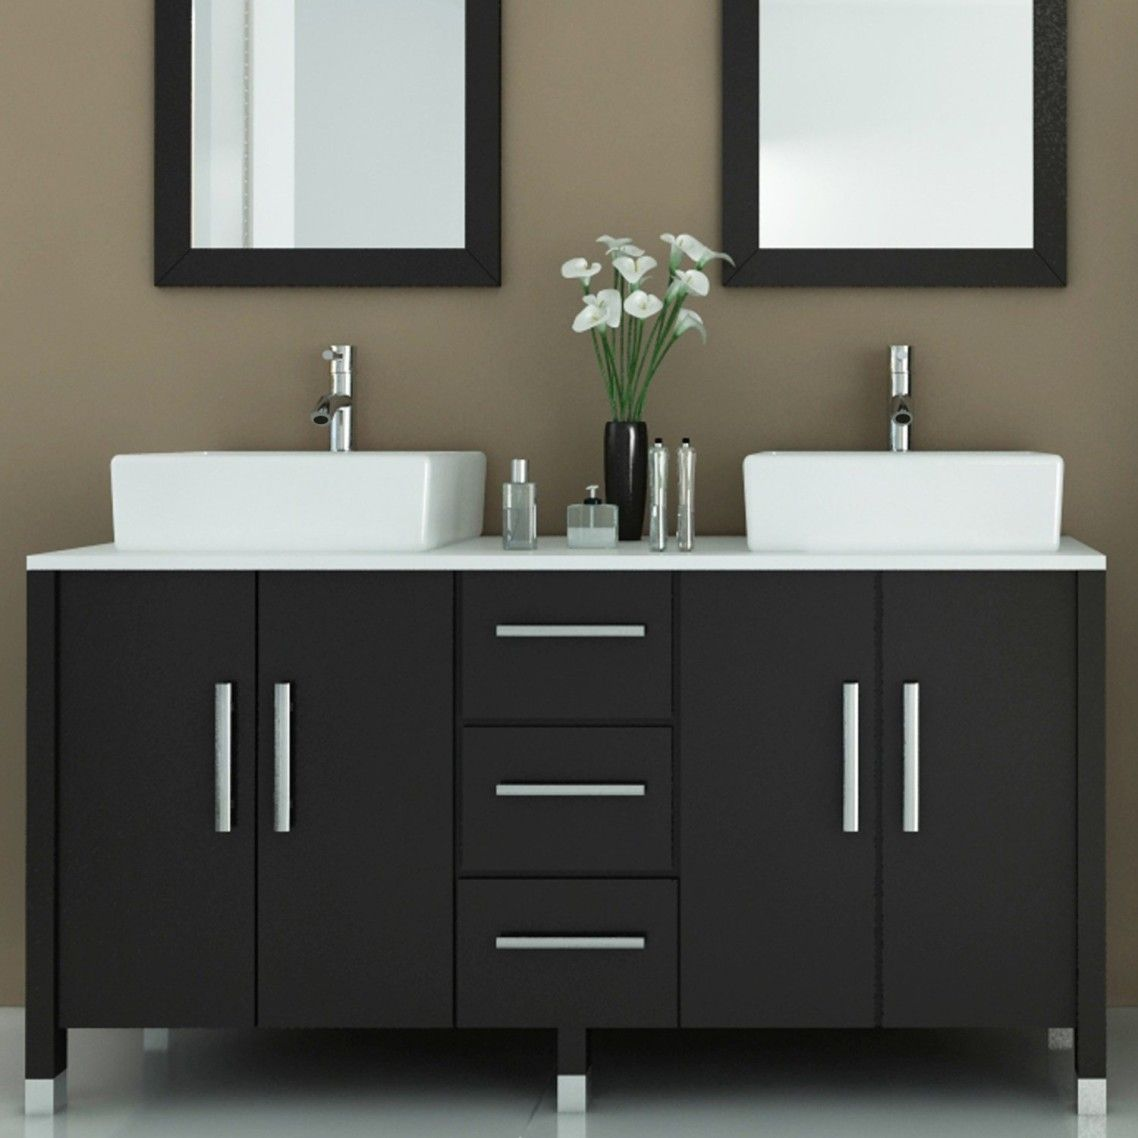 to vessel of cheap vanity sink modern bathroom best awesome regard ideas vanities amazing simple small with sinks design combo cabinet alluring picture